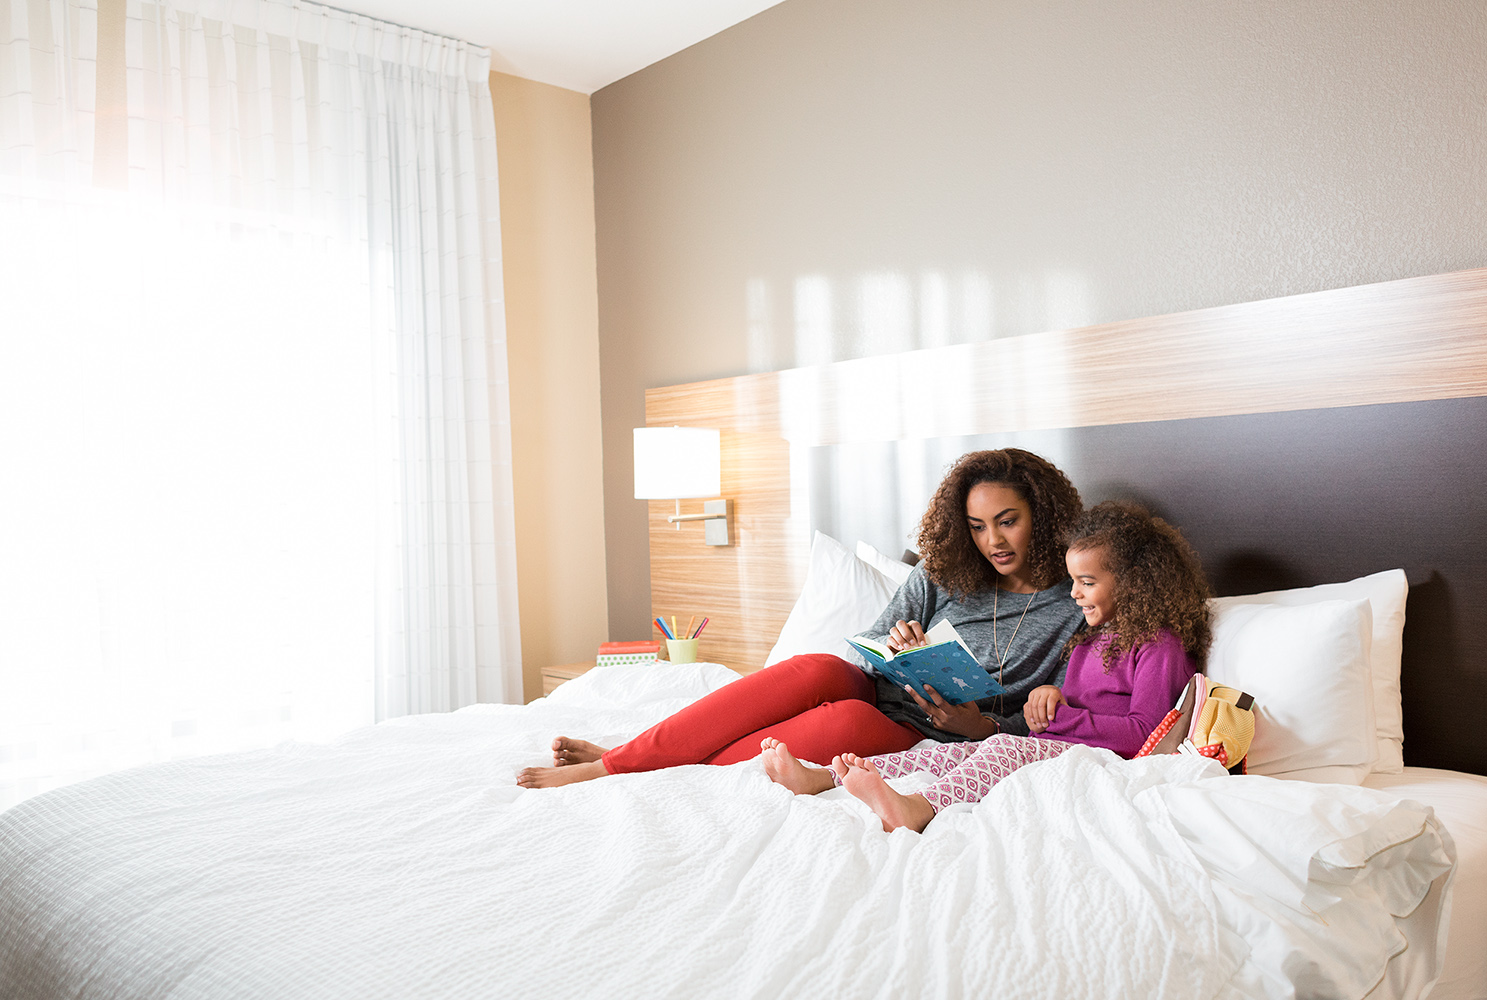 TPS_BrandPhotography_2015_Suite_Bed_Parent_Child_0644_web